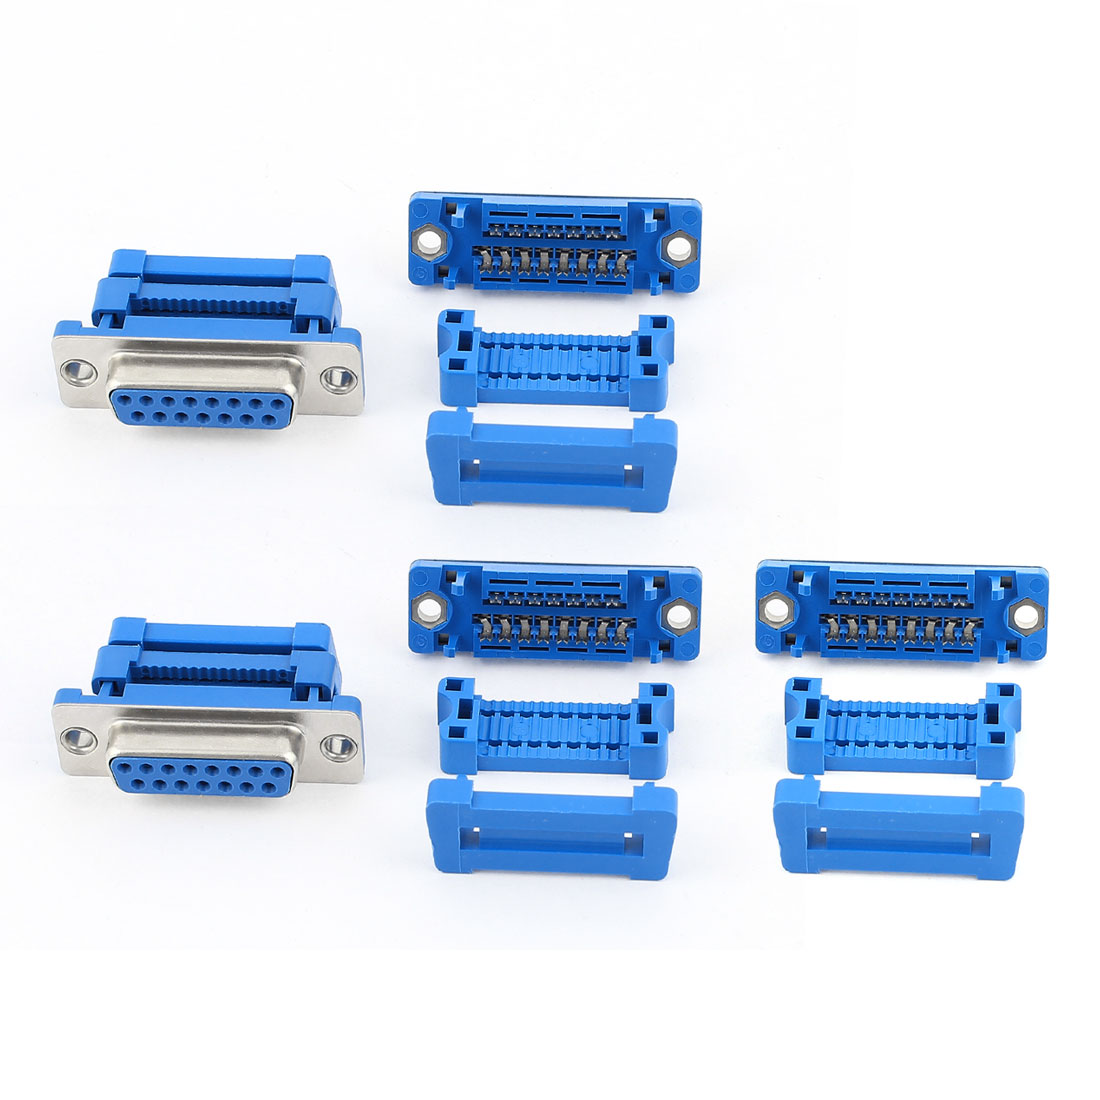 5pcs D-SUB DB15 15 Pin Female IDC Type Adapter Connector for Flat Ribbon Cable